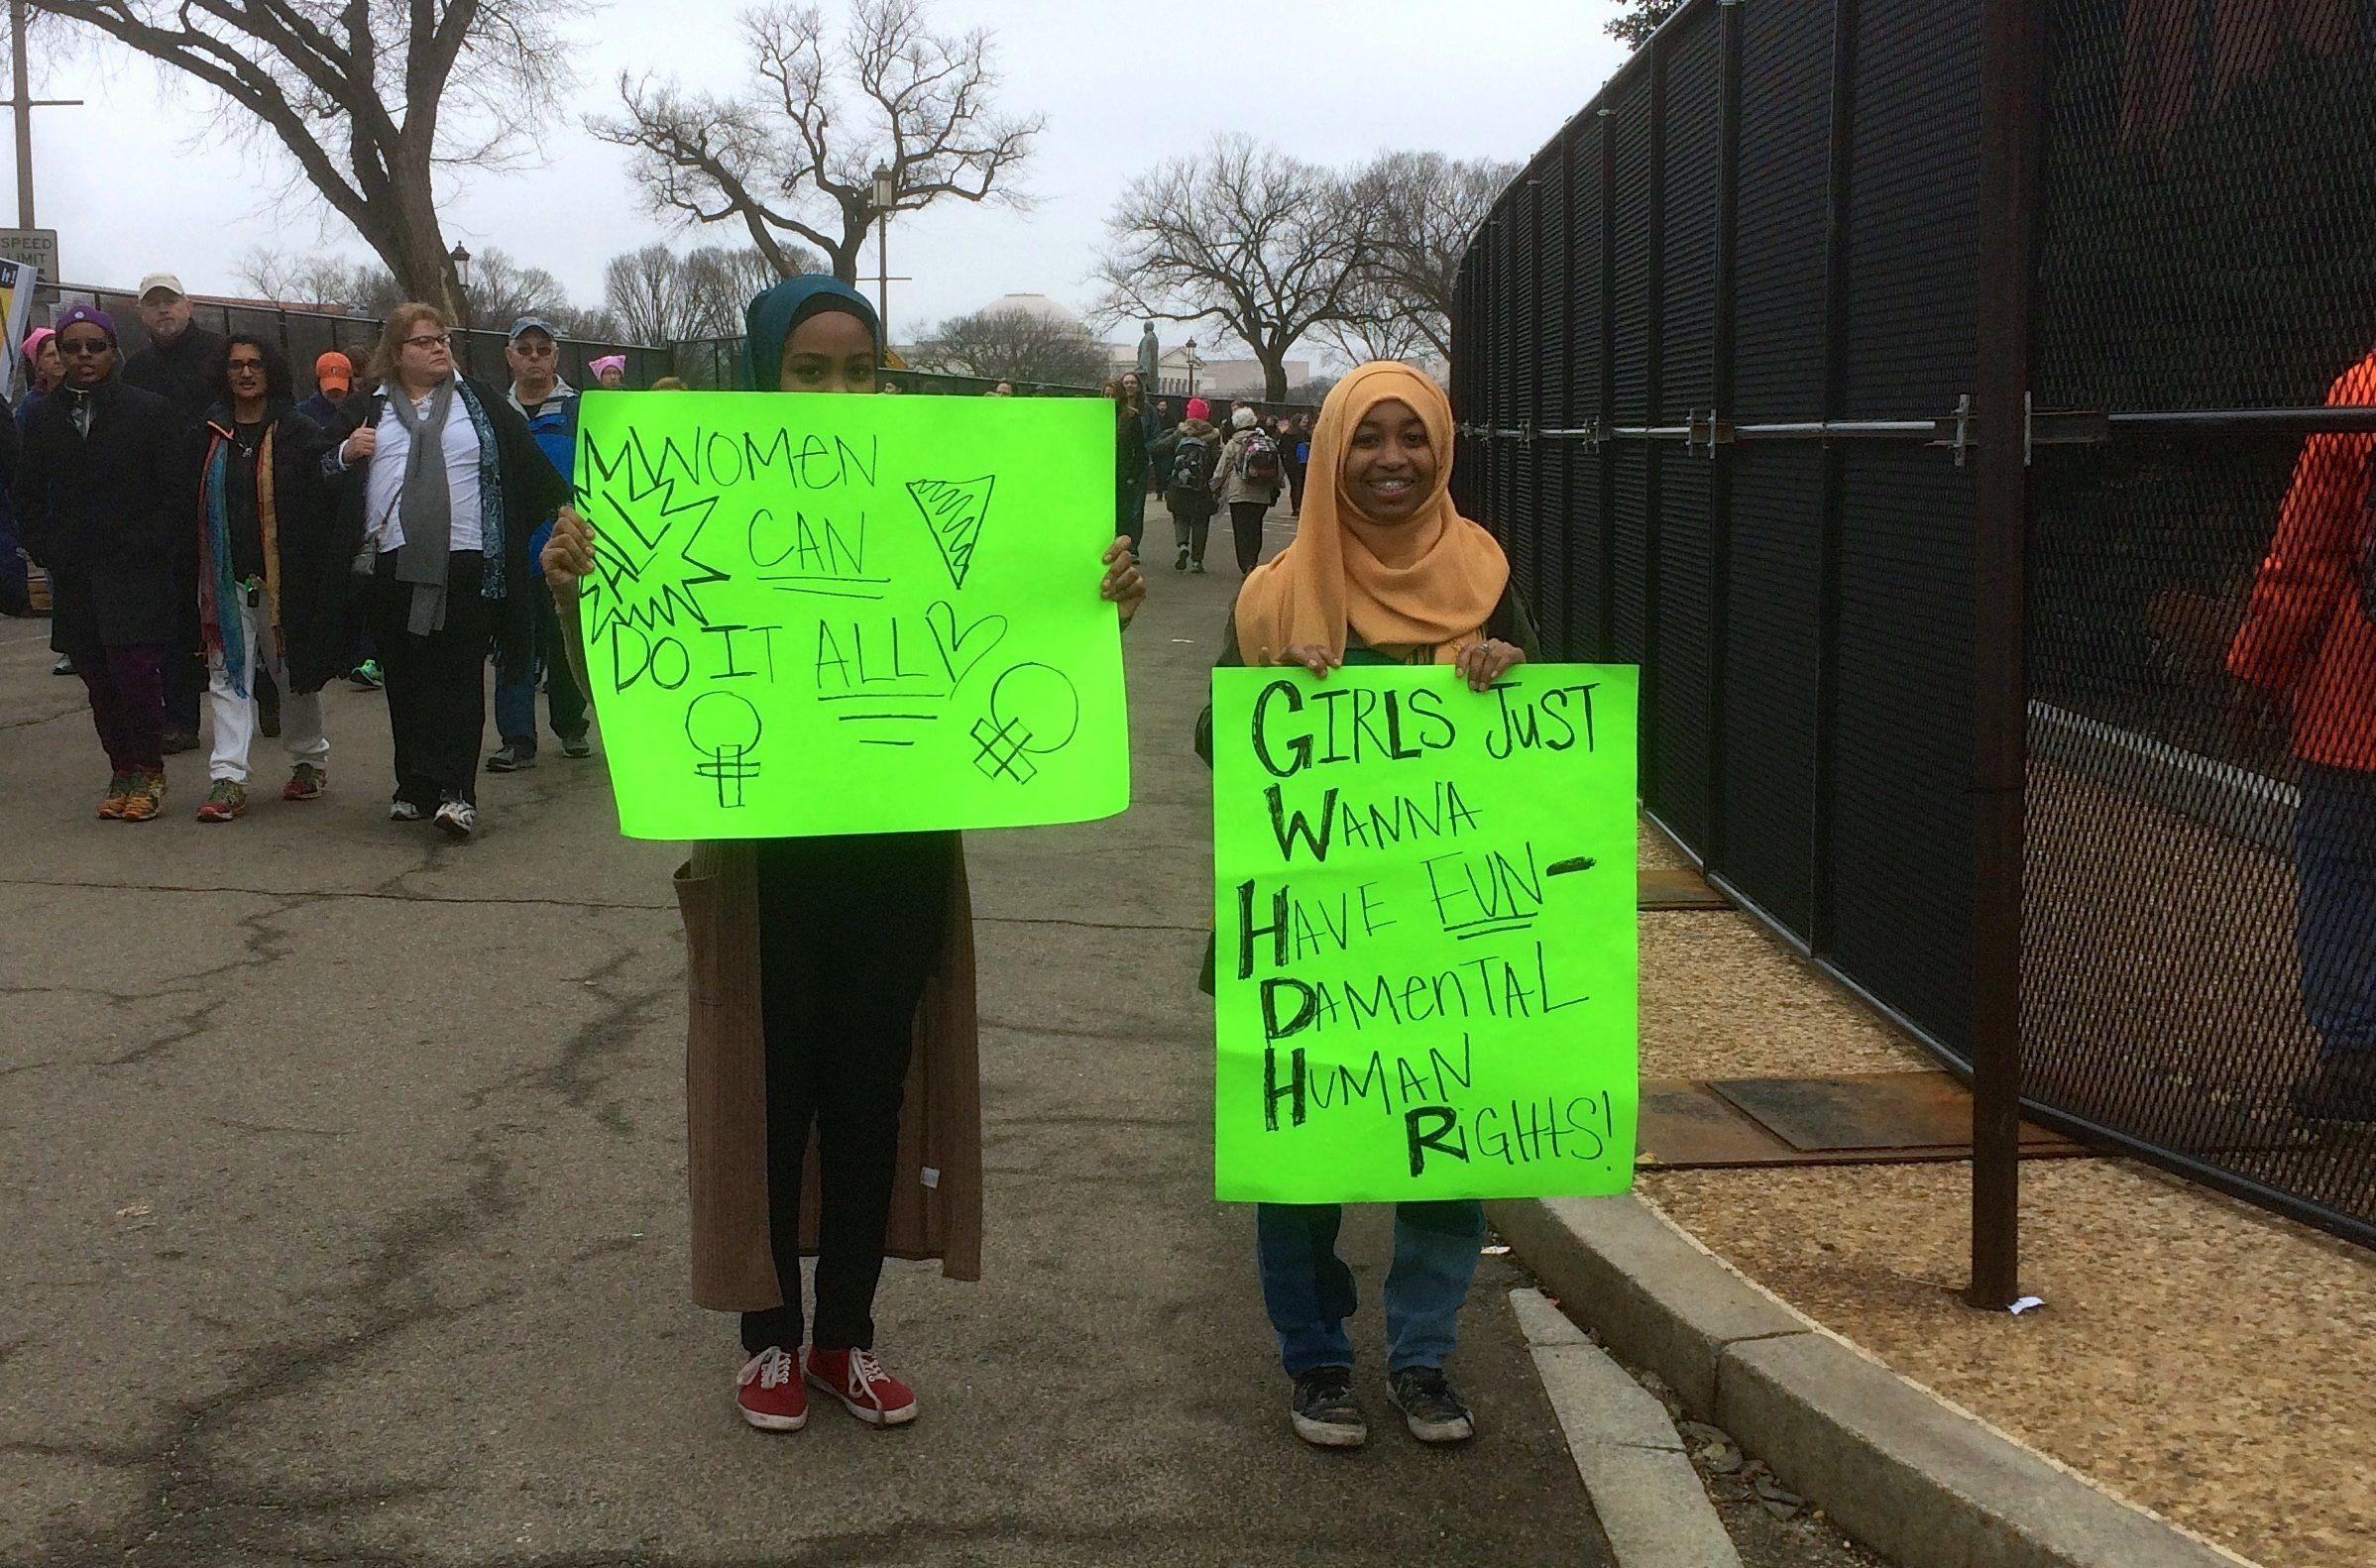 Yasminand EkramSeid, 13and 18, respectively, will be runningcircles around us one day.